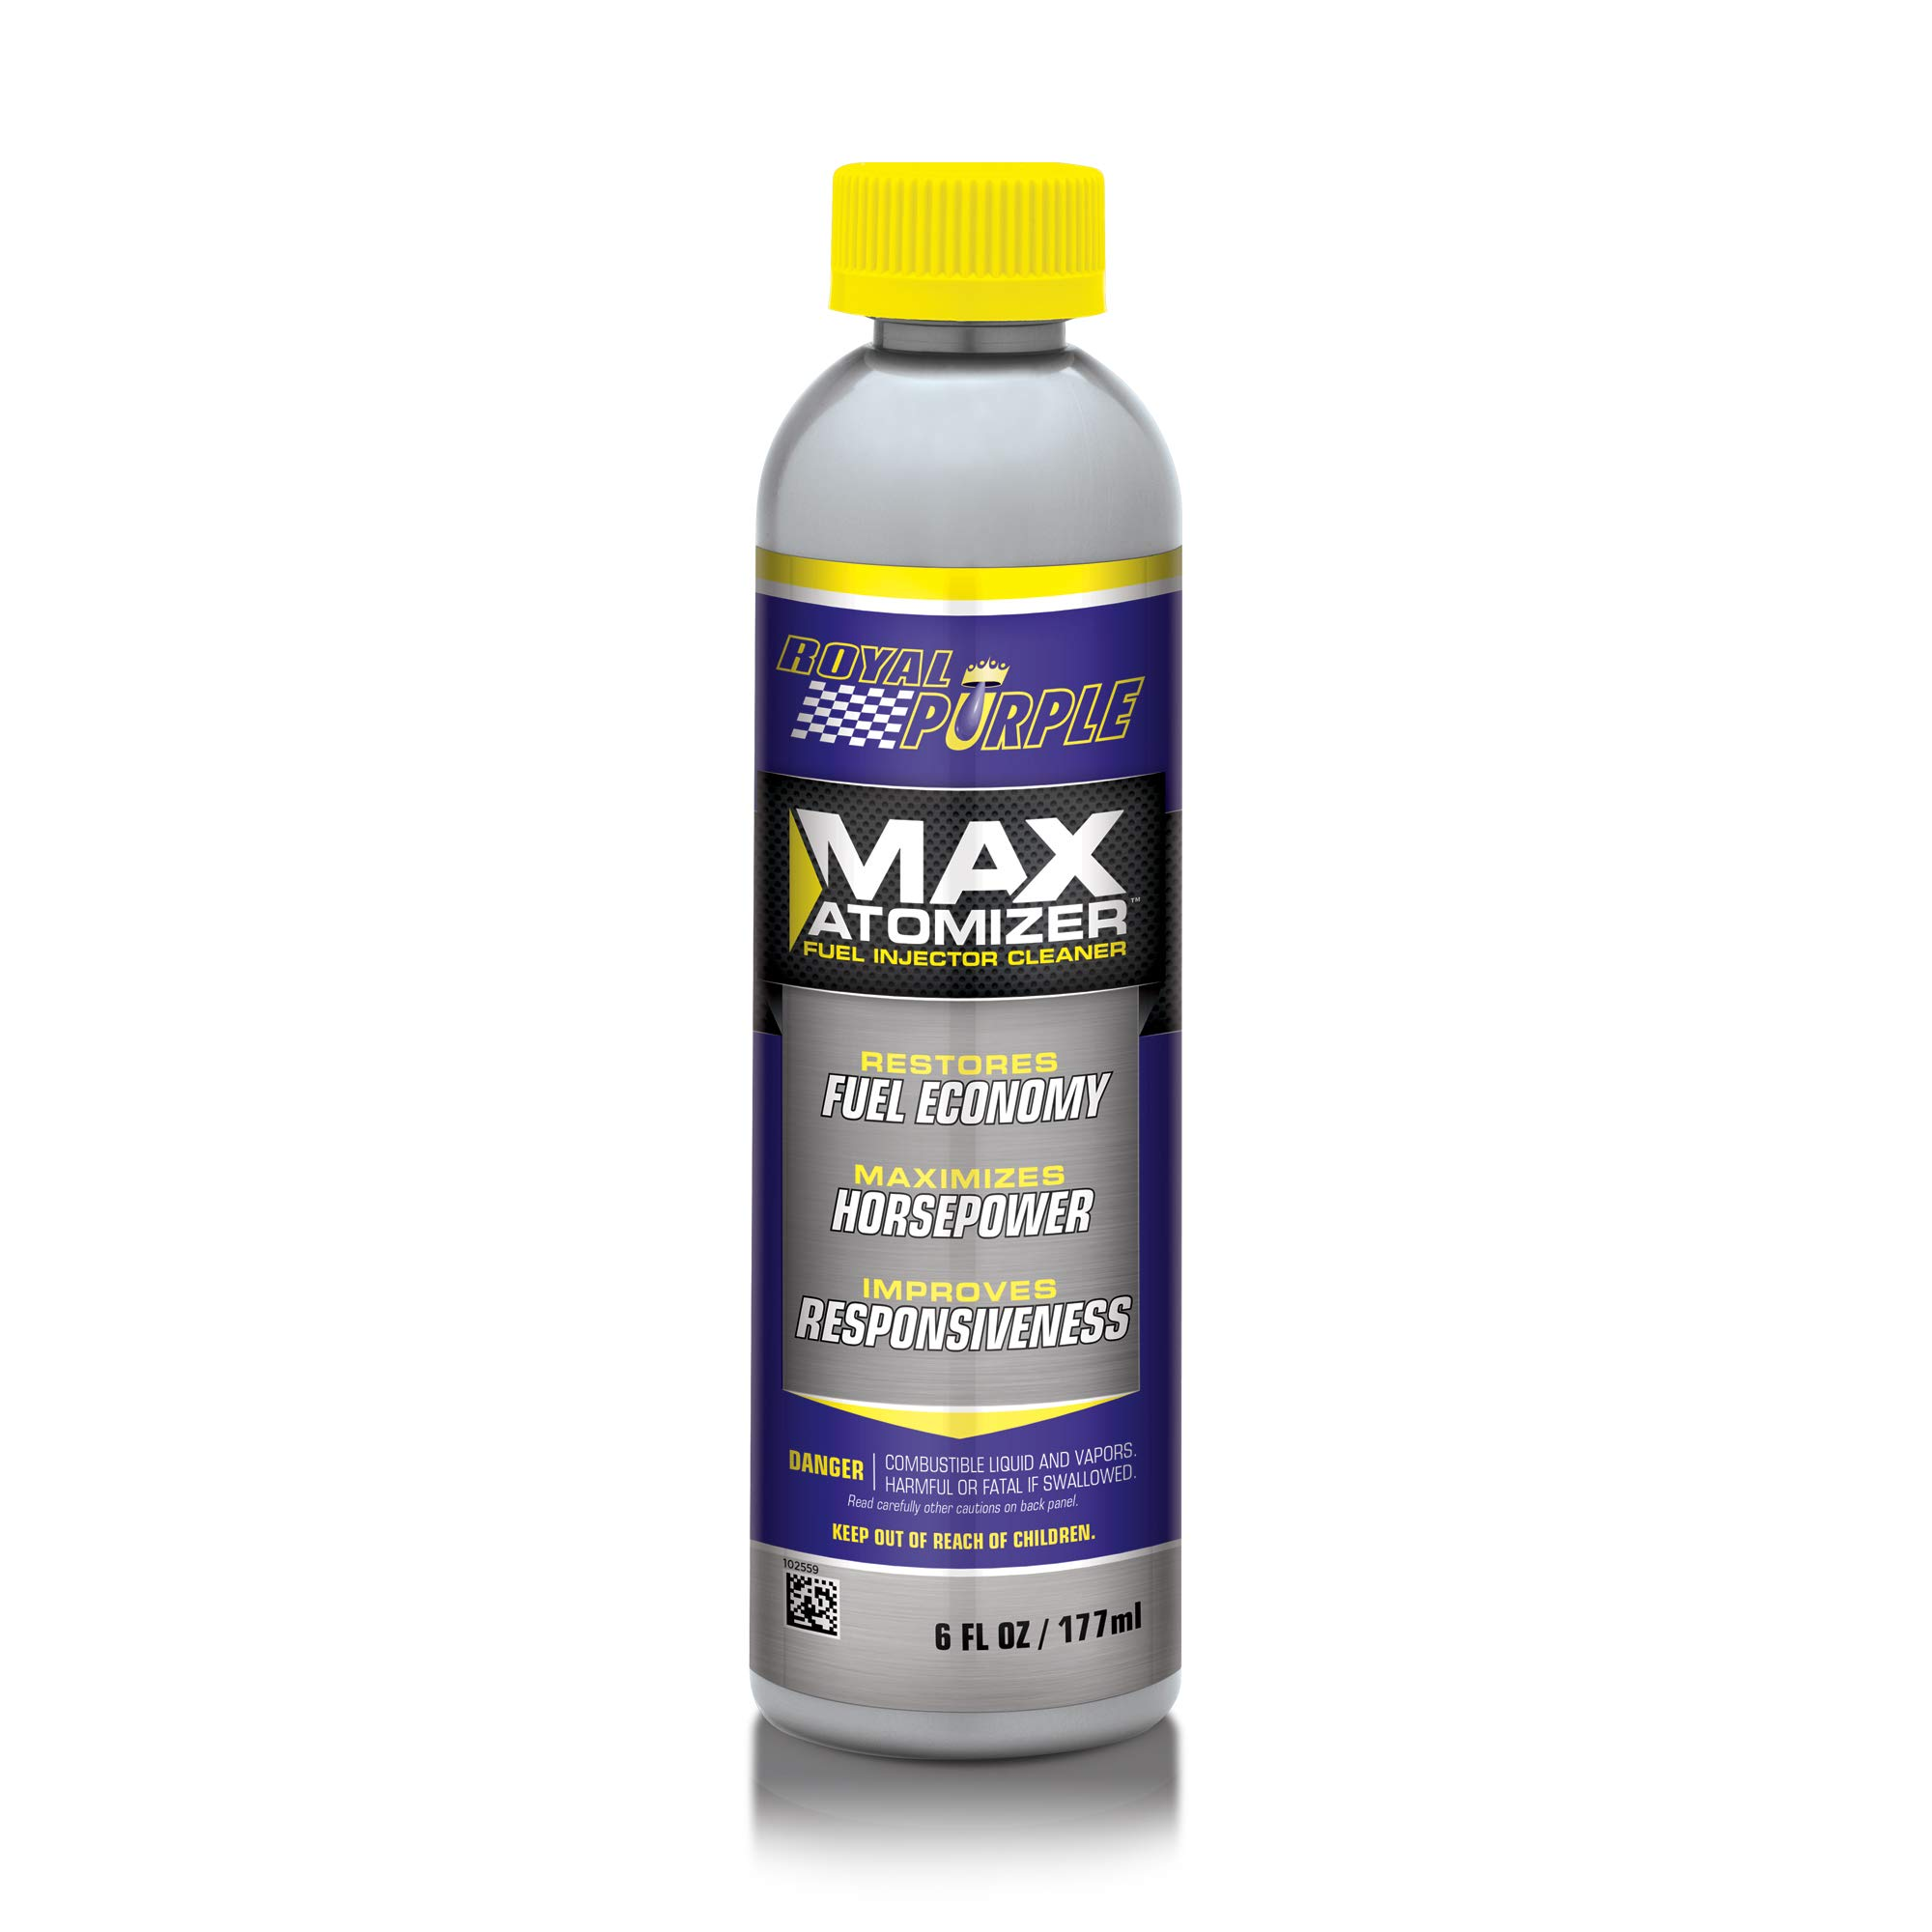 Royal Purple 18000 Max Atomizer Fuel Injector Cleaner